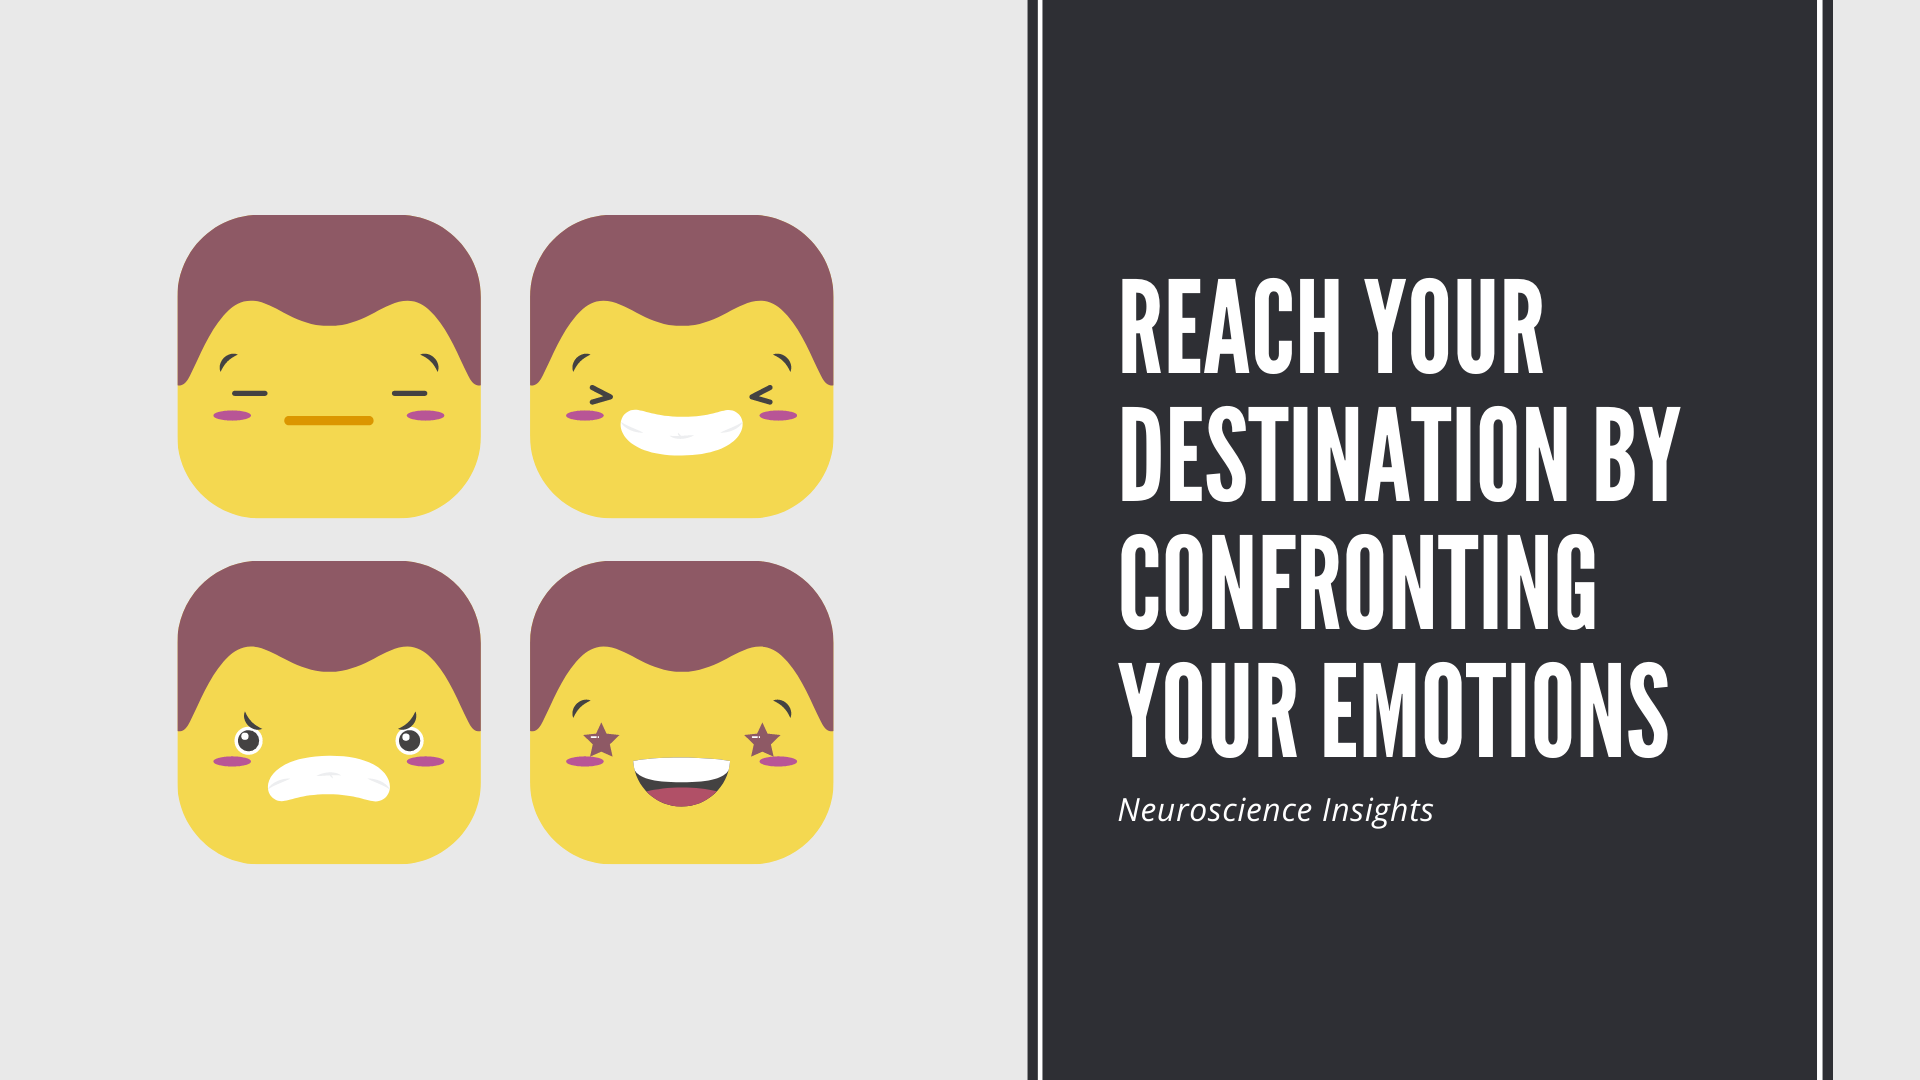 Reach Your Destination by Confronting Your Emotions